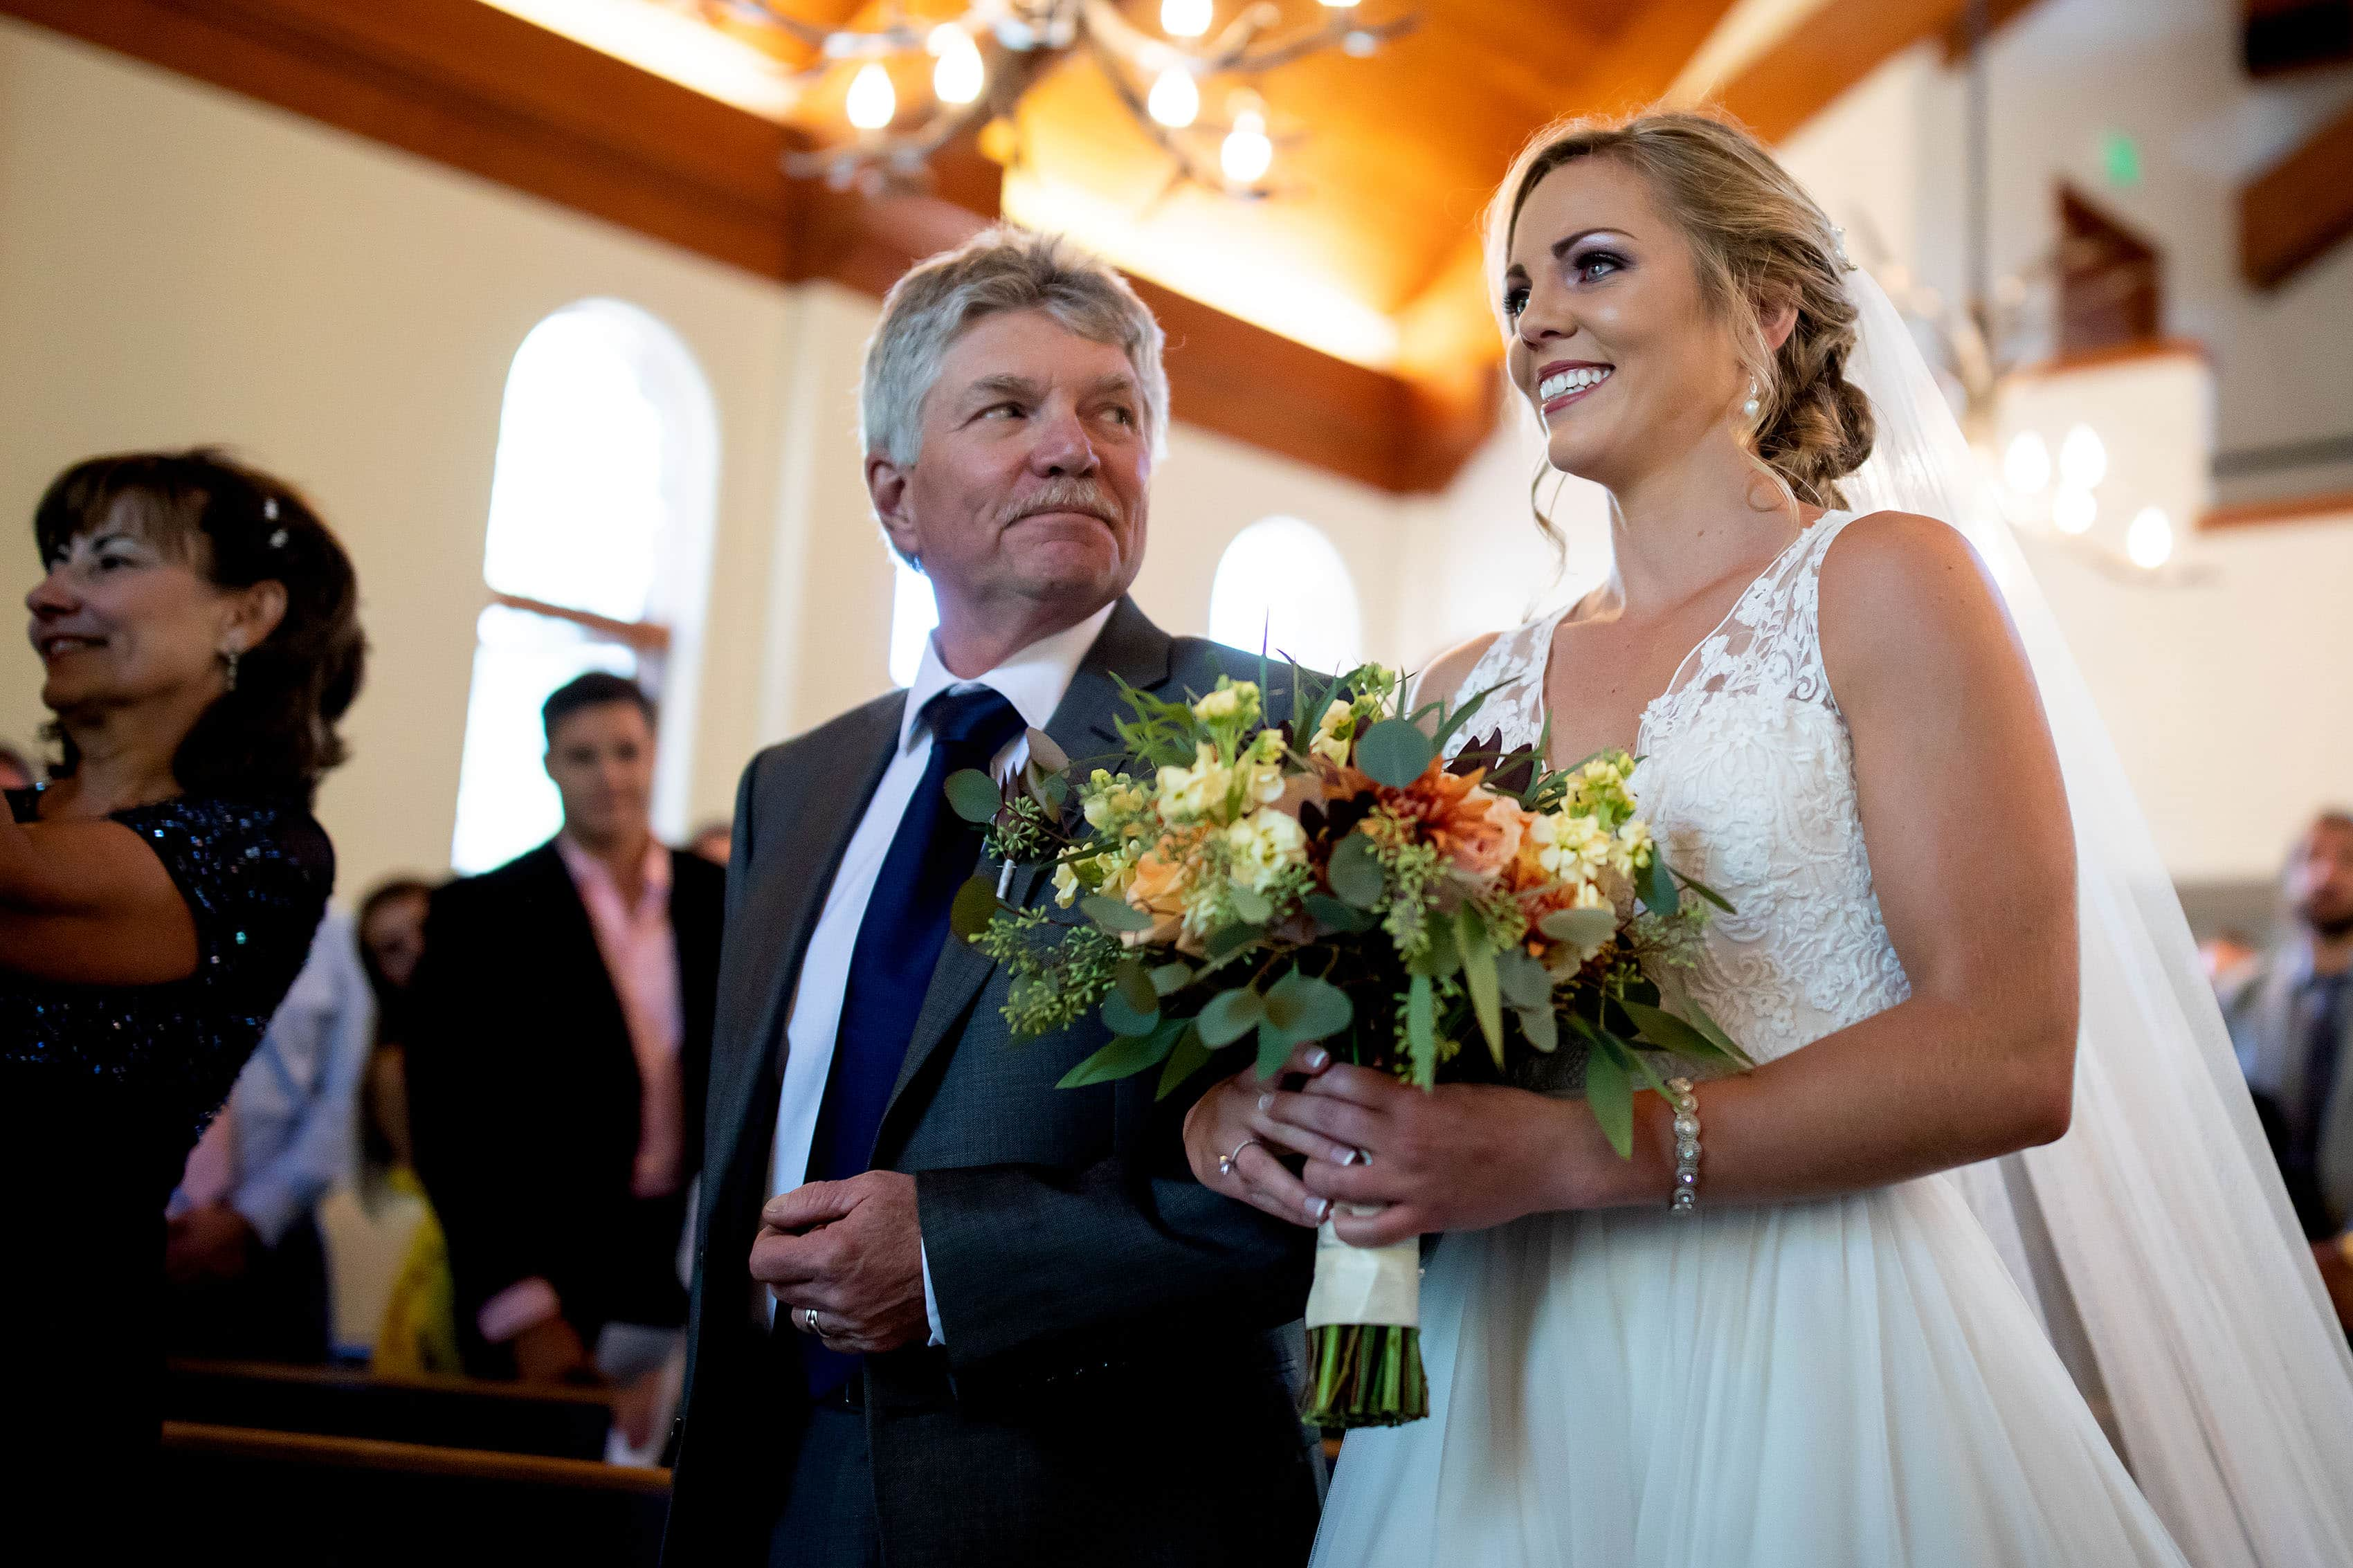 The bride becomes emotional while walking down the aisle with her father during a wedding at the Capel at Beaver Creek